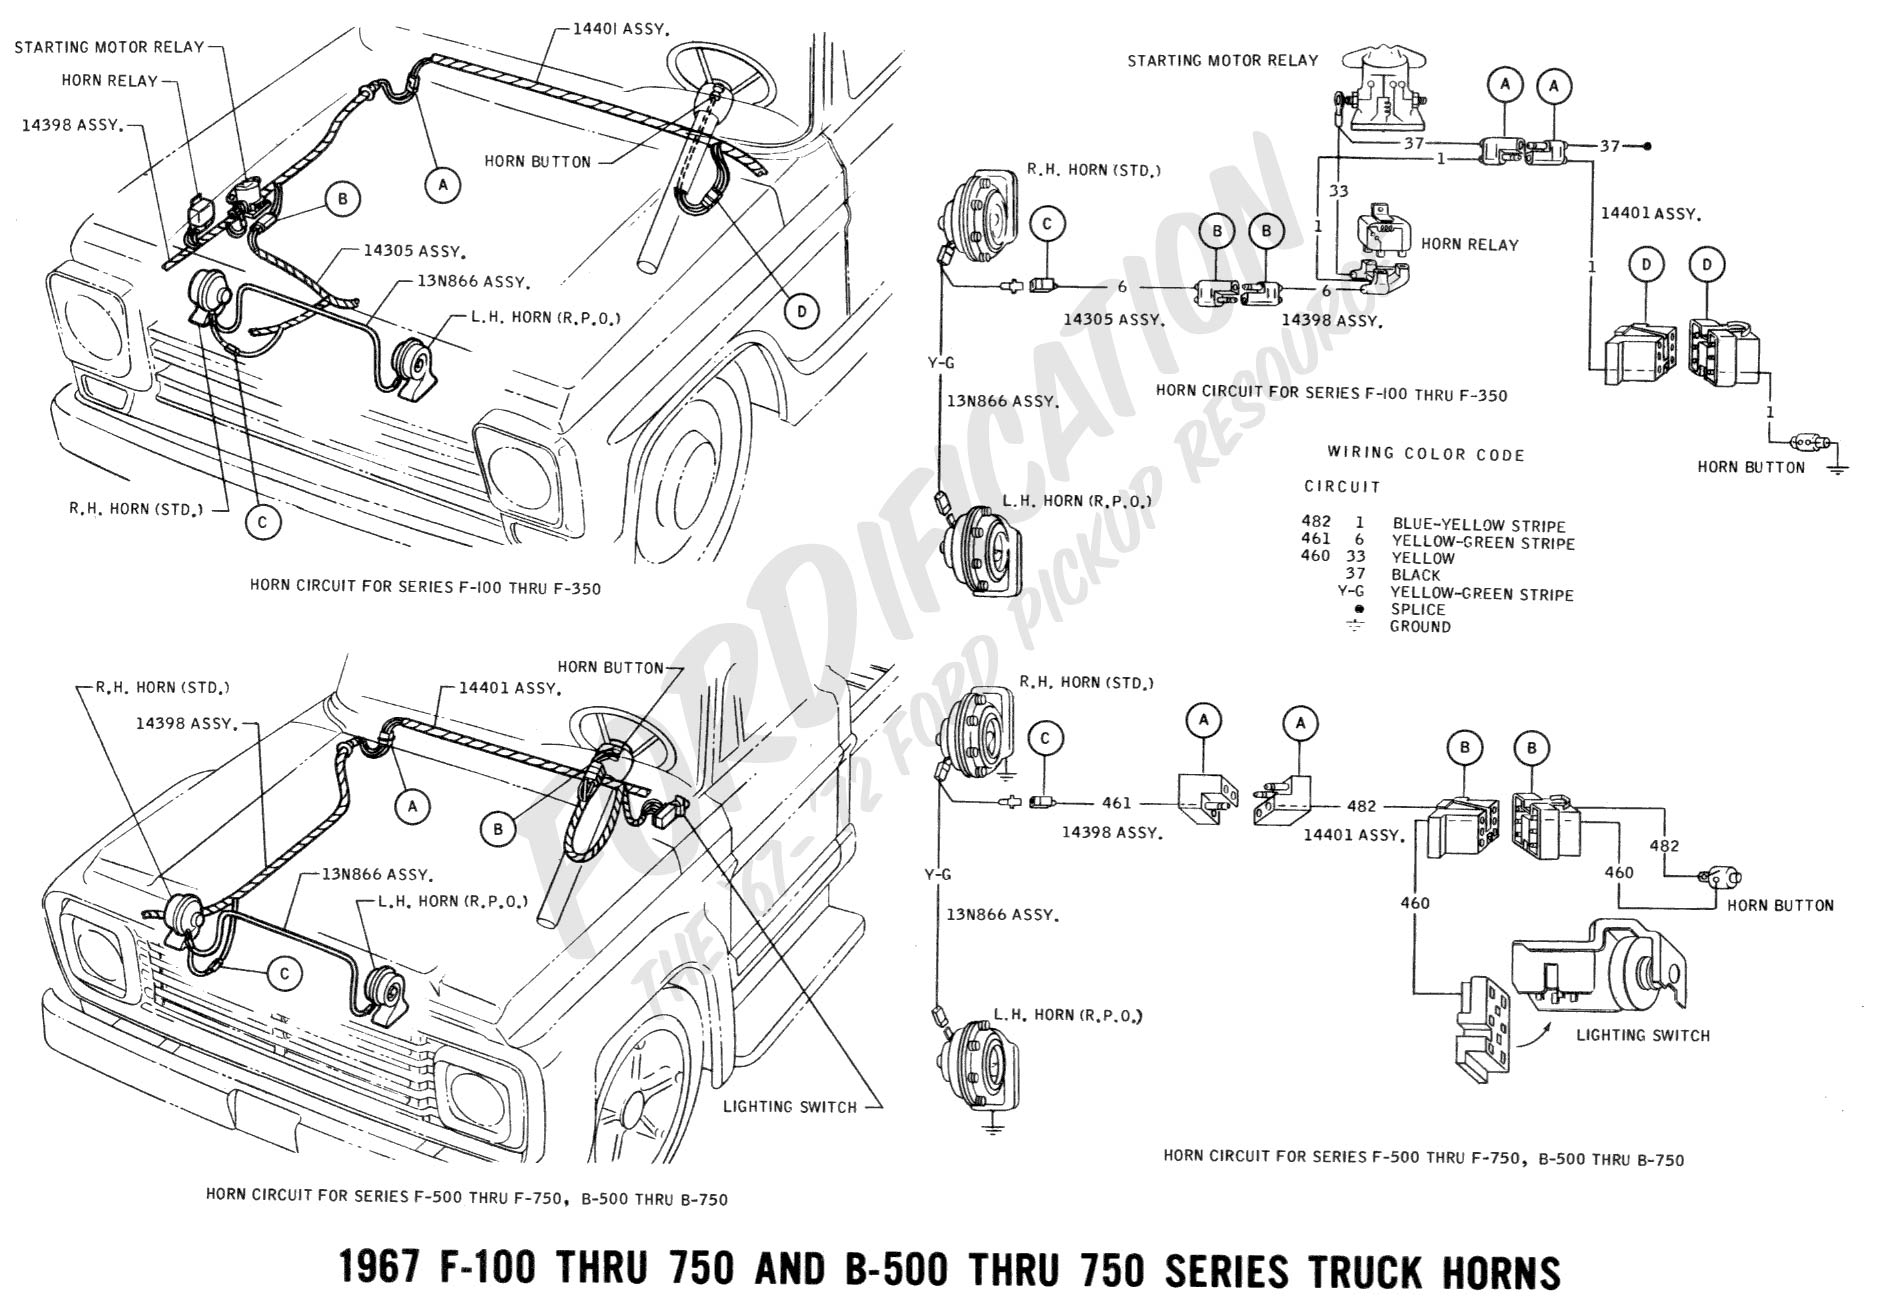 Ford F750 Wiring Auto Electrical Diagram 2003 Volvo S60 2 4t Fuse Box Truck Technical Drawings And Schematics